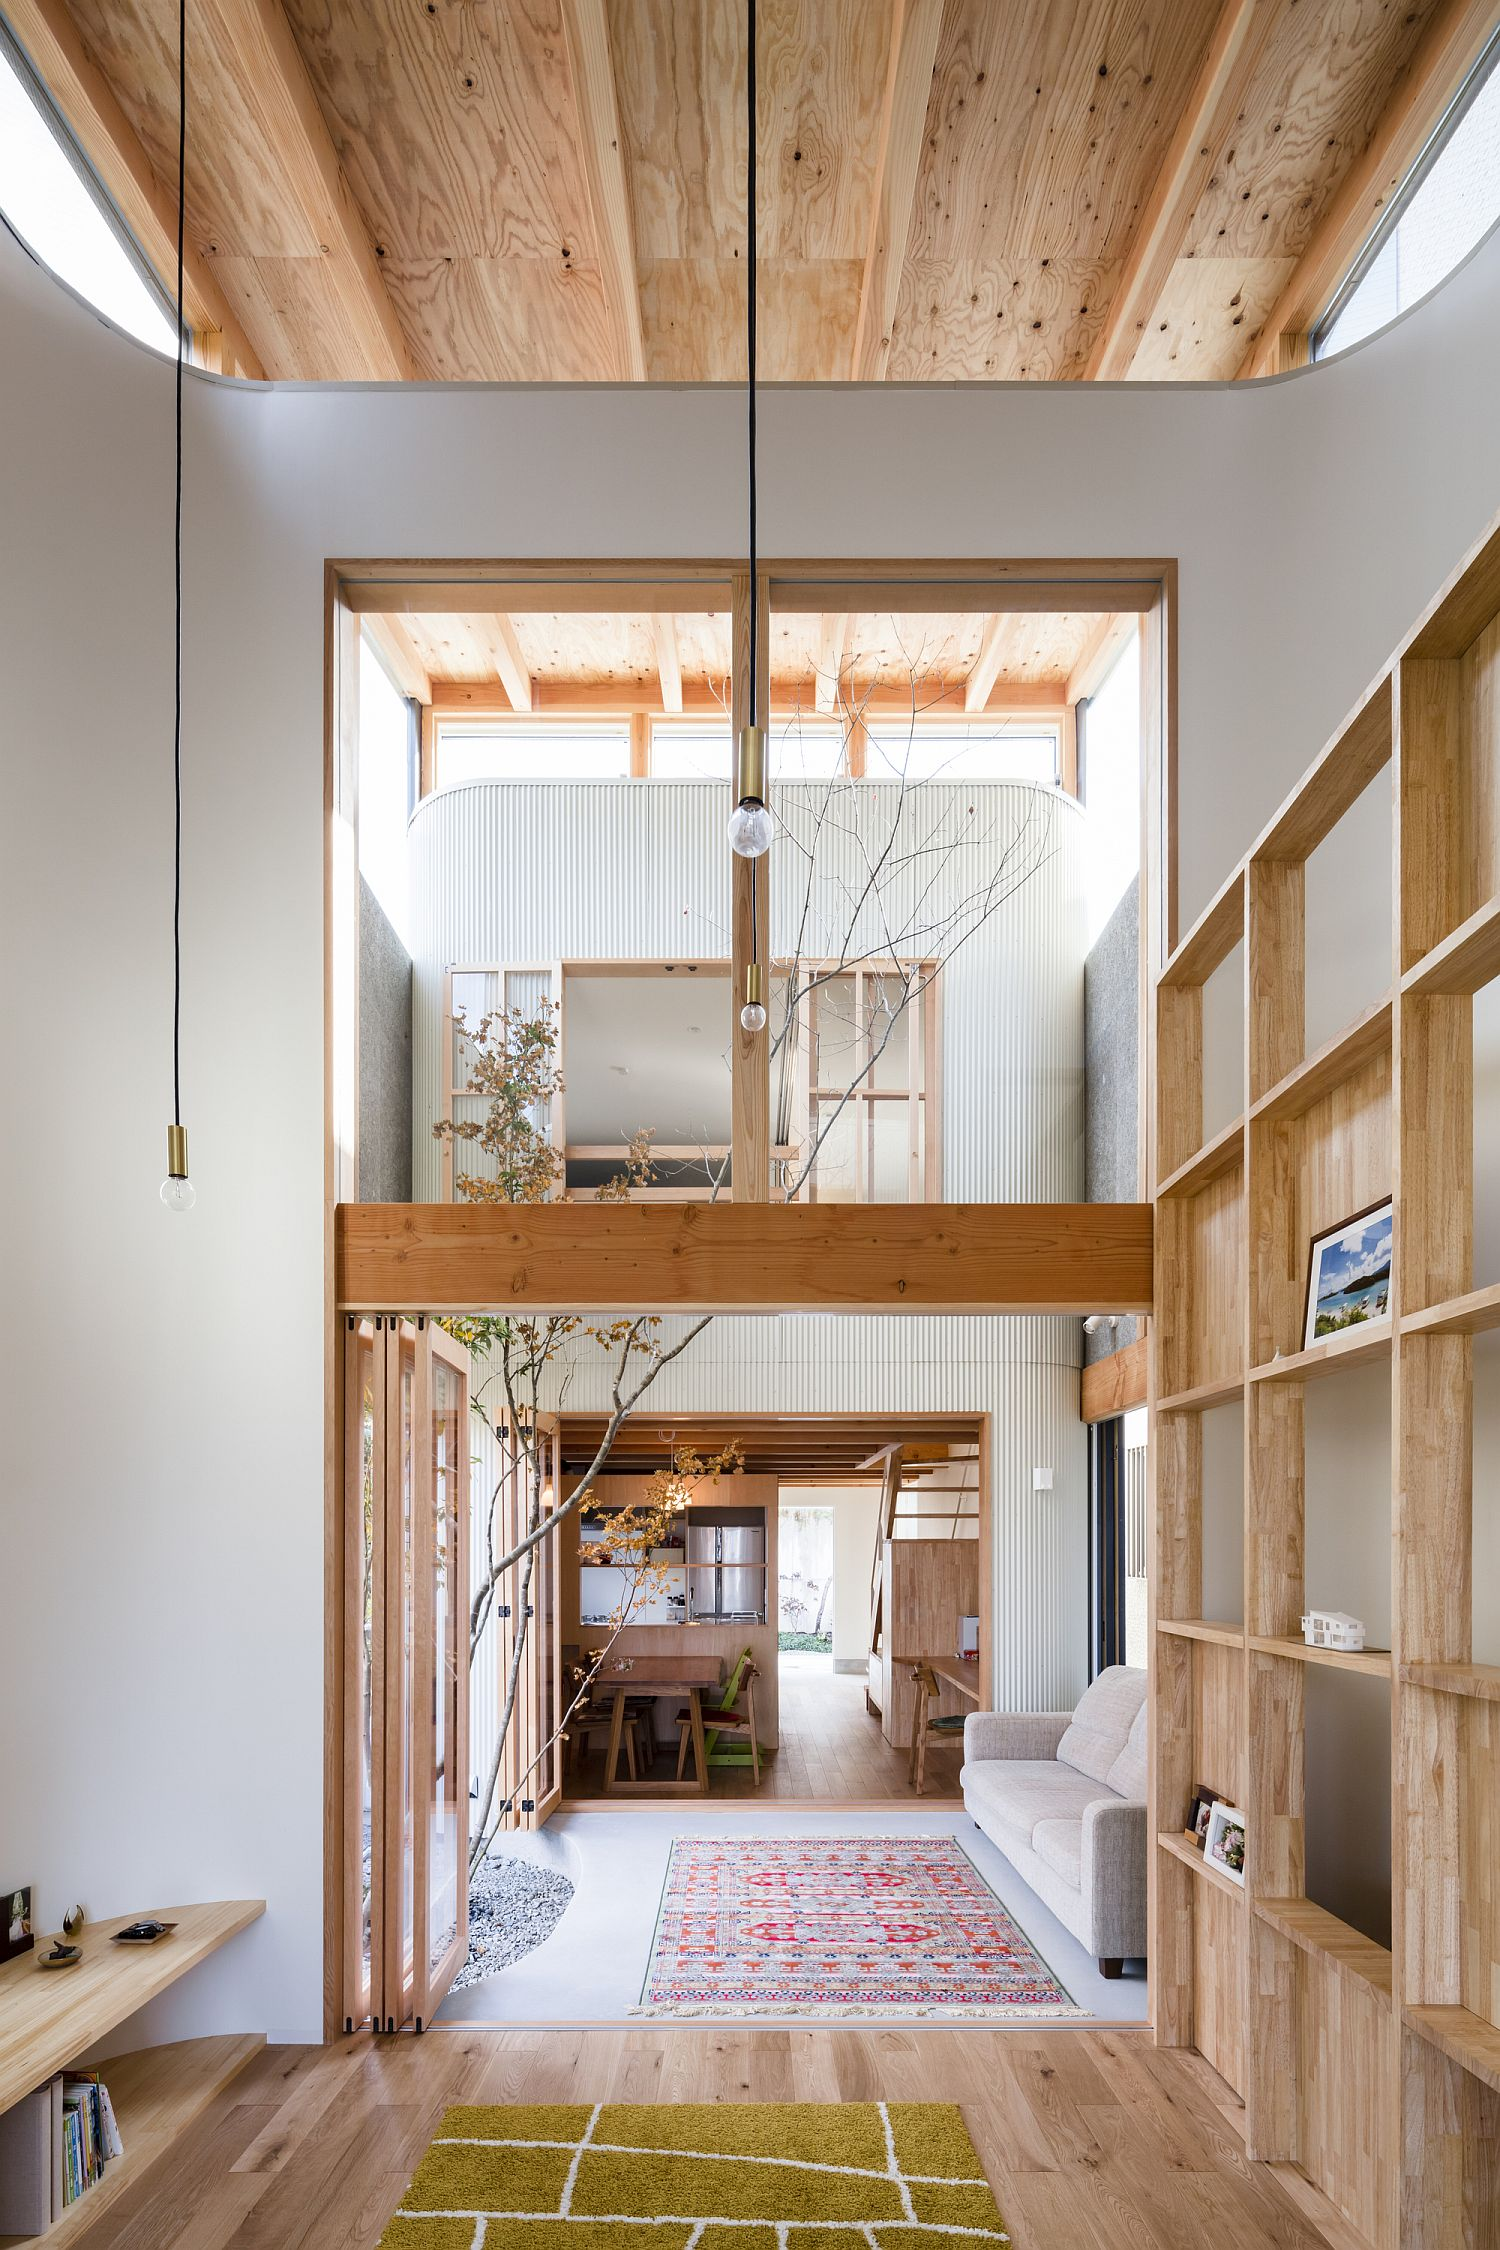 Fabulous Japanese home in white and wood with a breezy, double-height interior